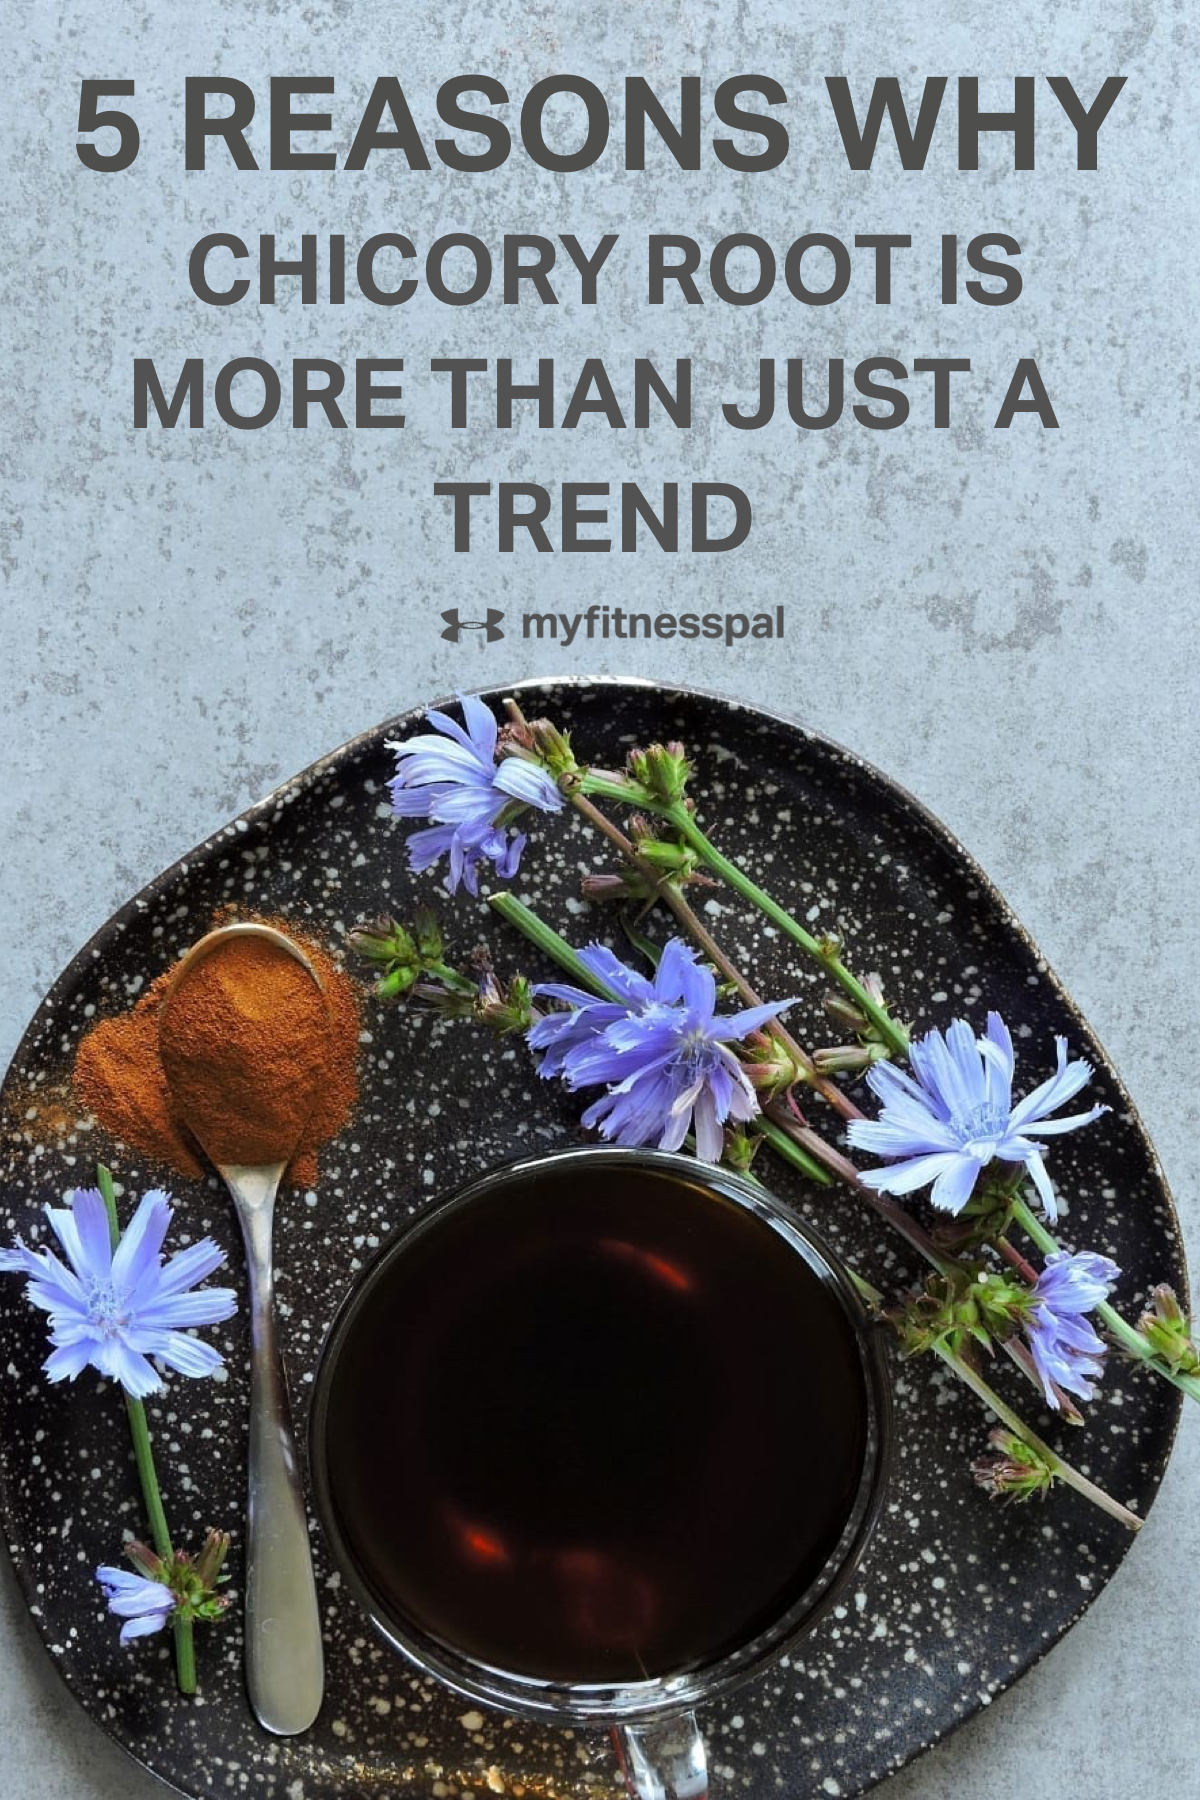 5 Reasons Chicory Root Is More Than a Trend in 2020